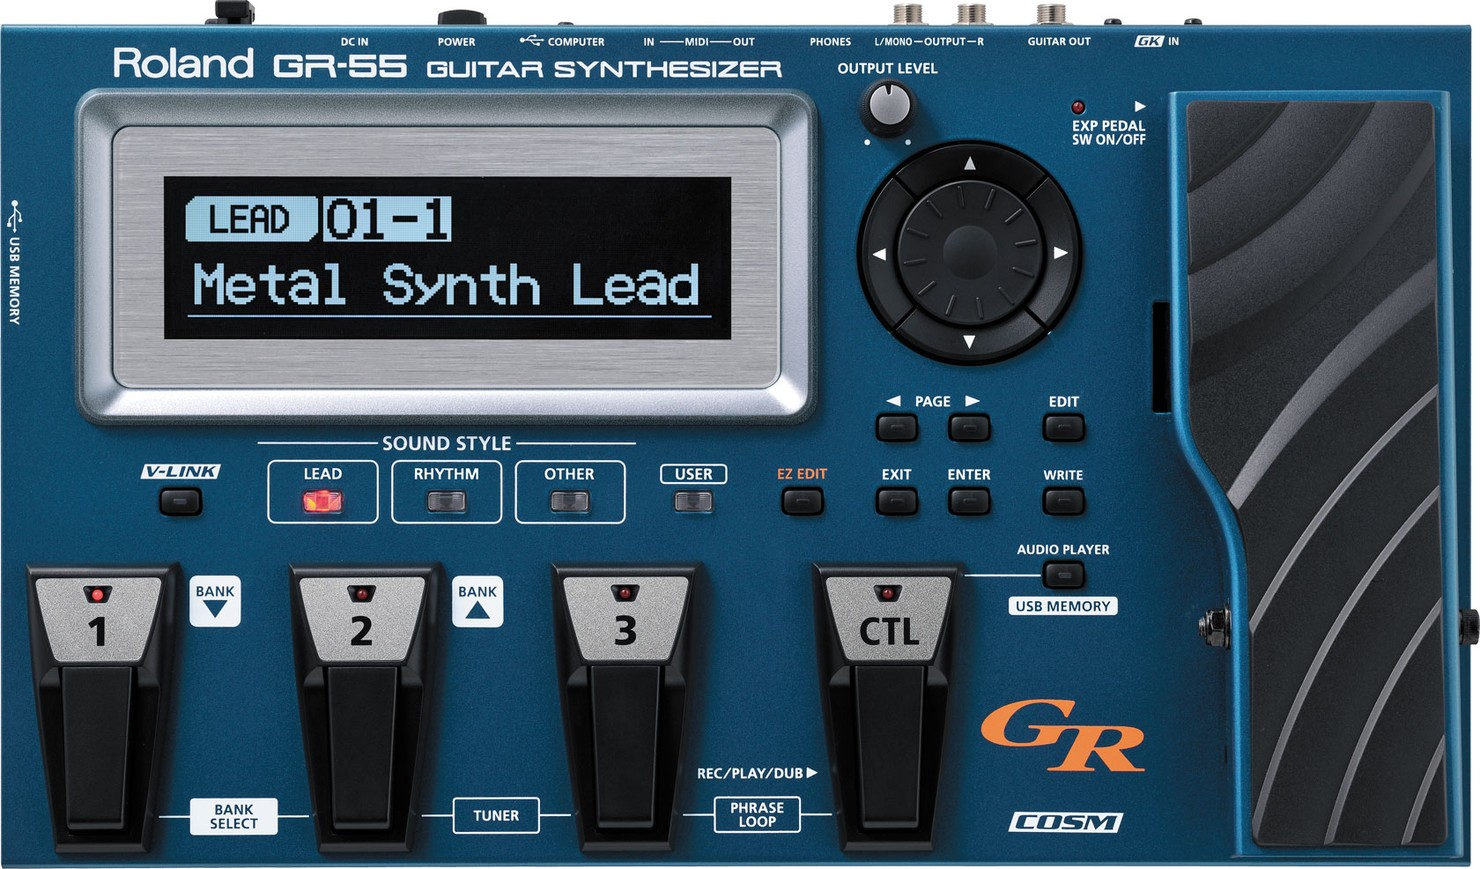 GR-55 Guitar Synthesizer Version 15 Additional Patches